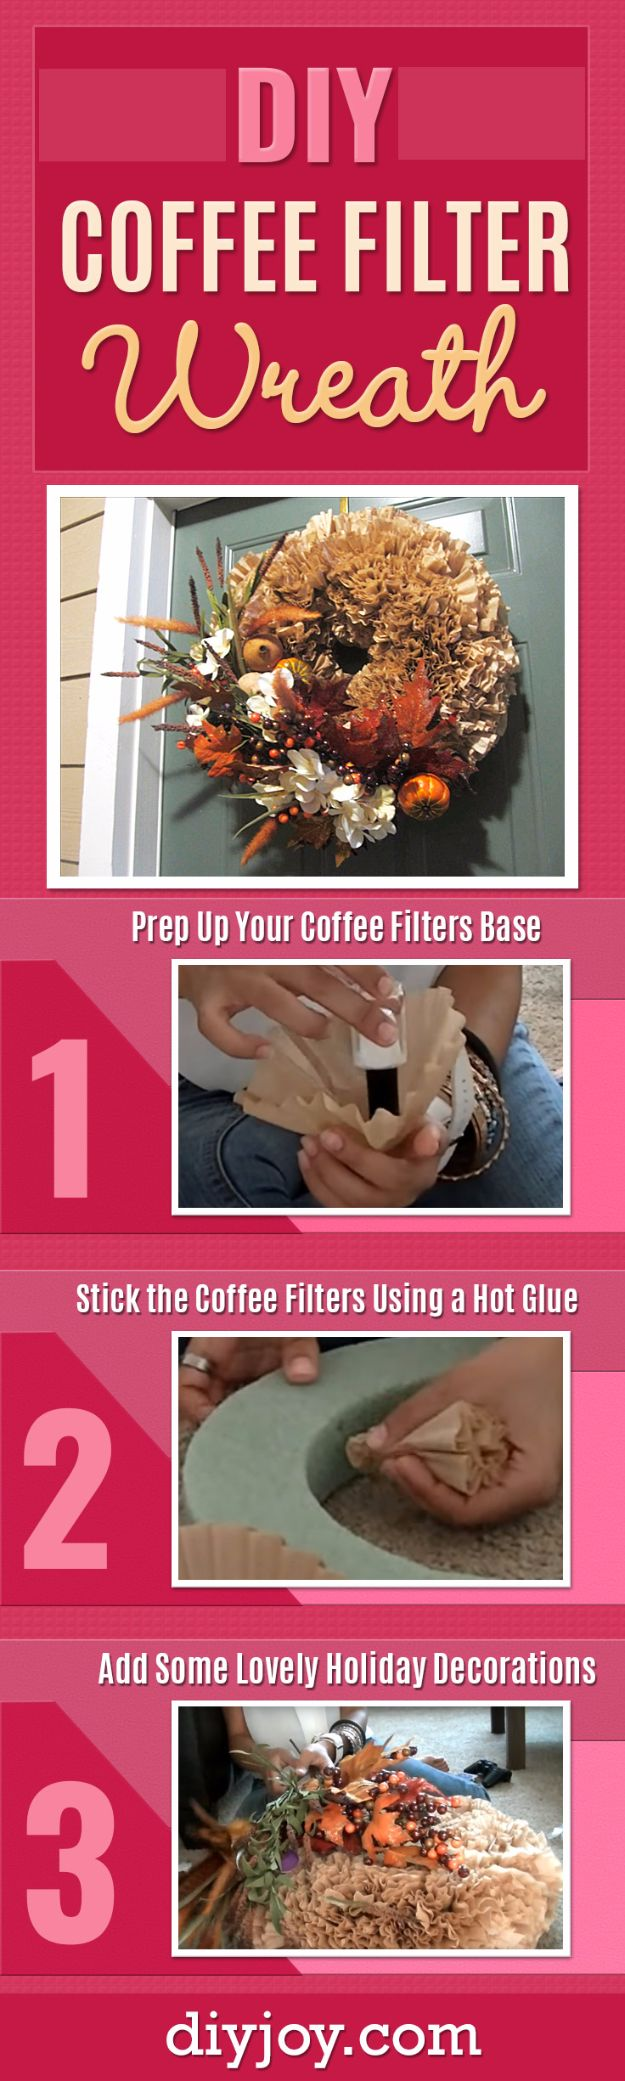 Best Crafts for Fall - DIY Fall Coffee Filter Wreath - DIY Mason Jar Ideas, Dollar Store Crafts, Rustic Pumpkin Ideas, Wreaths, Candles and Wall Art, Centerpieces, Wedding Decorations, Homemade Gifts, Craft Projects with Leaves, Flowers and Burlap, Painted Art, Candles and Luminaries for Cool Home Decor - Quick and Easy Projects With Step by Step Tutorials and Instructions http://diyjoy.com/best-crafts-for-fall